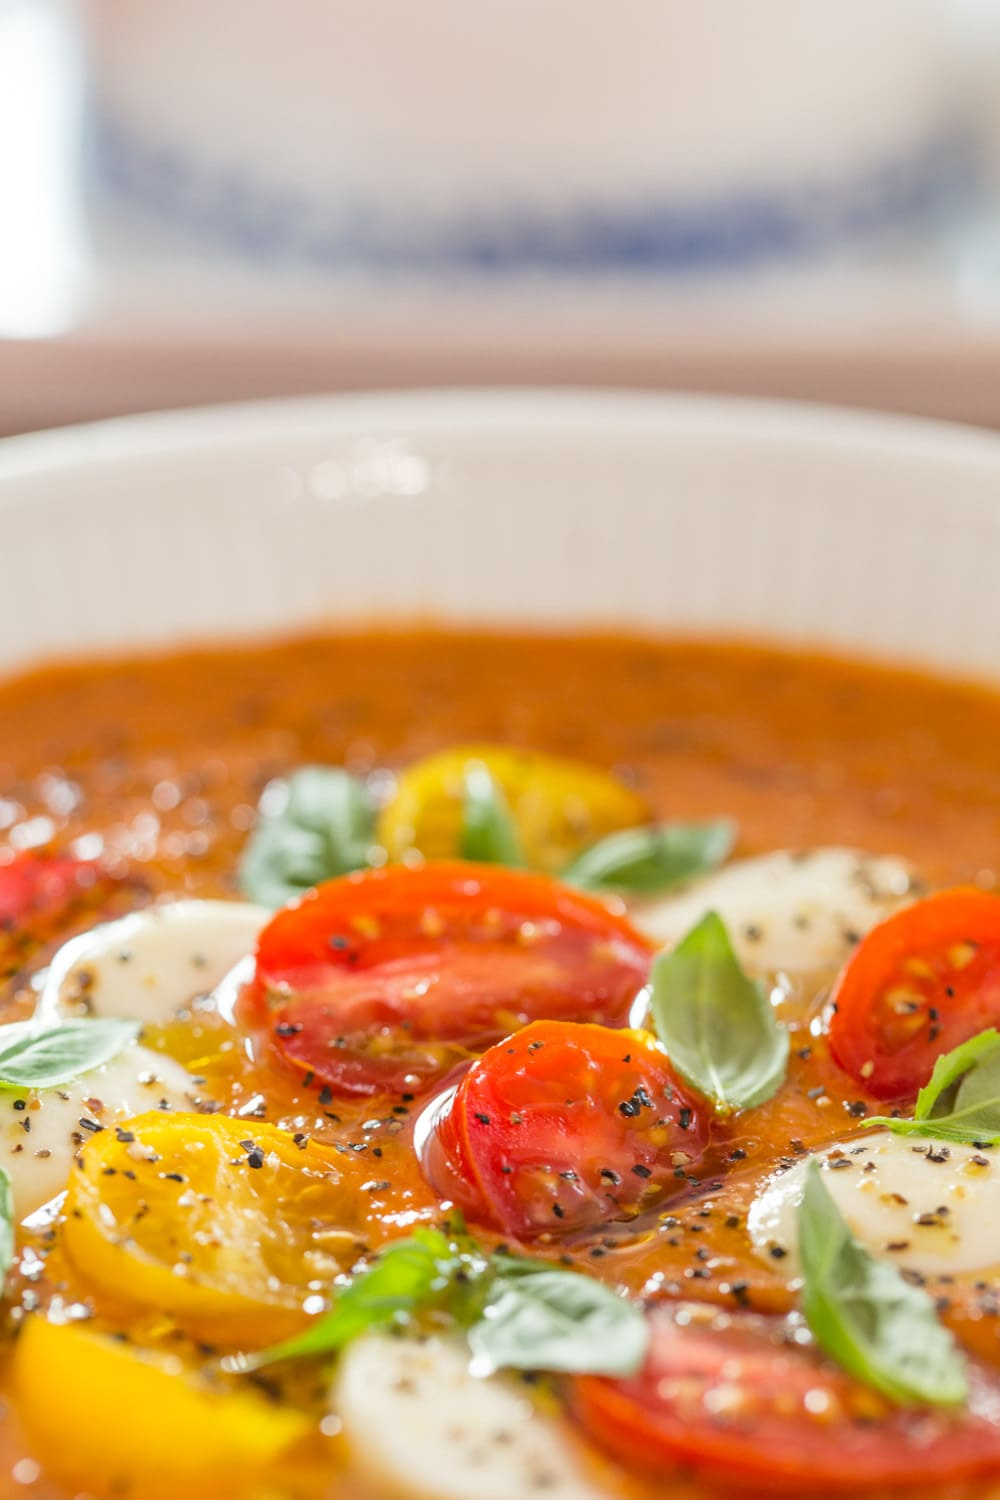 Extreme close up picture of Roasted Tomato Lentil Soup Caprese